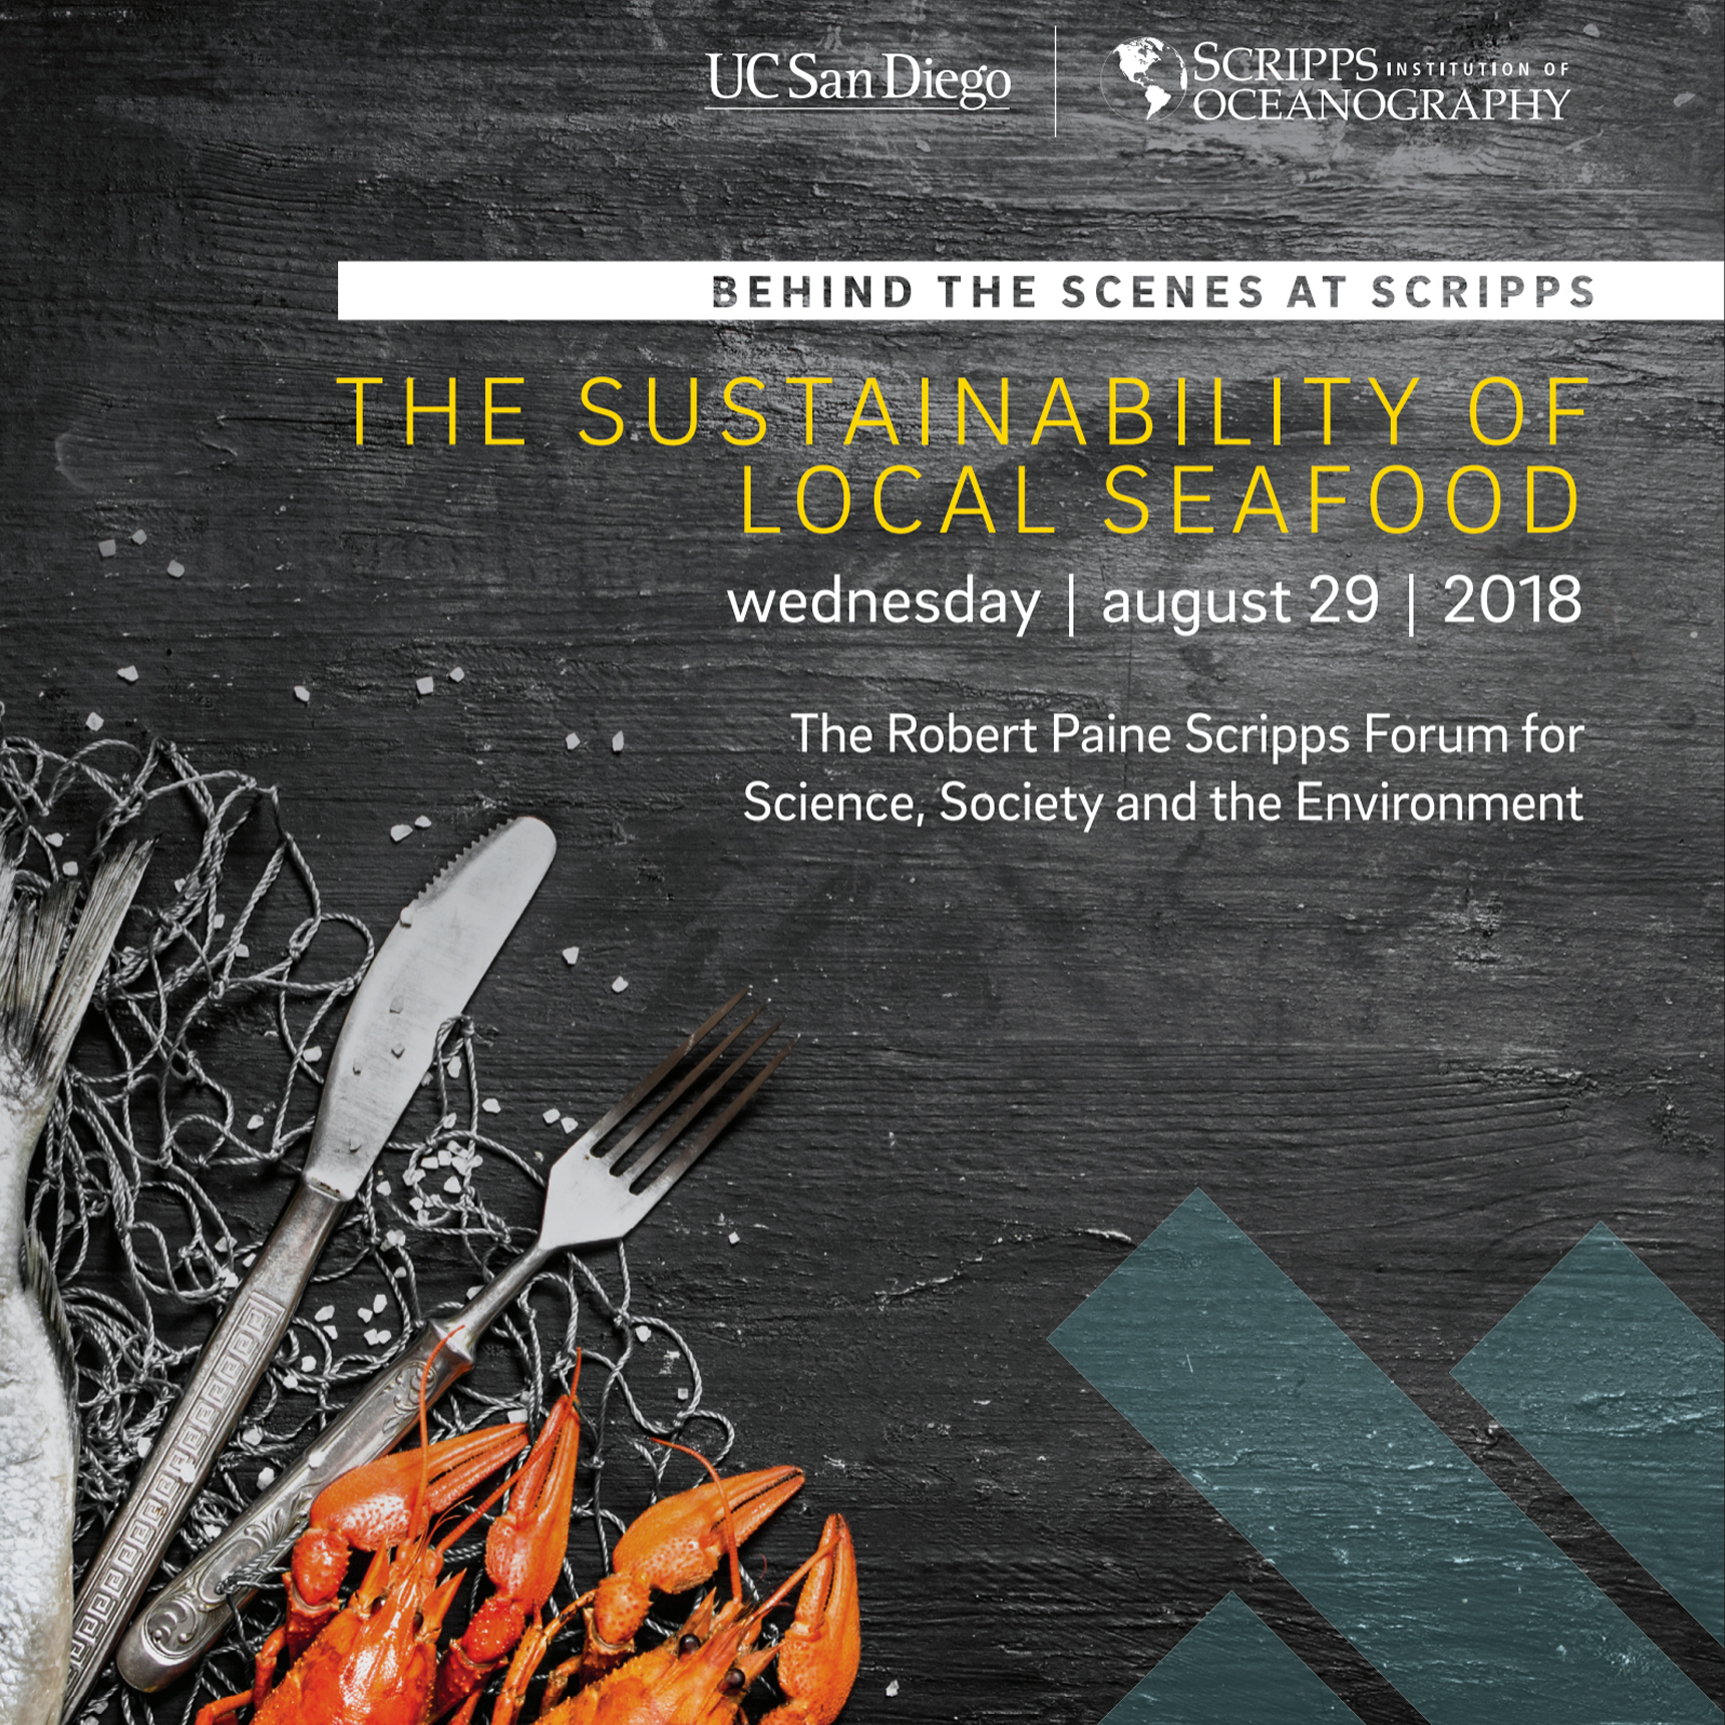 Panelist: Sustainability of Local Seafood Event